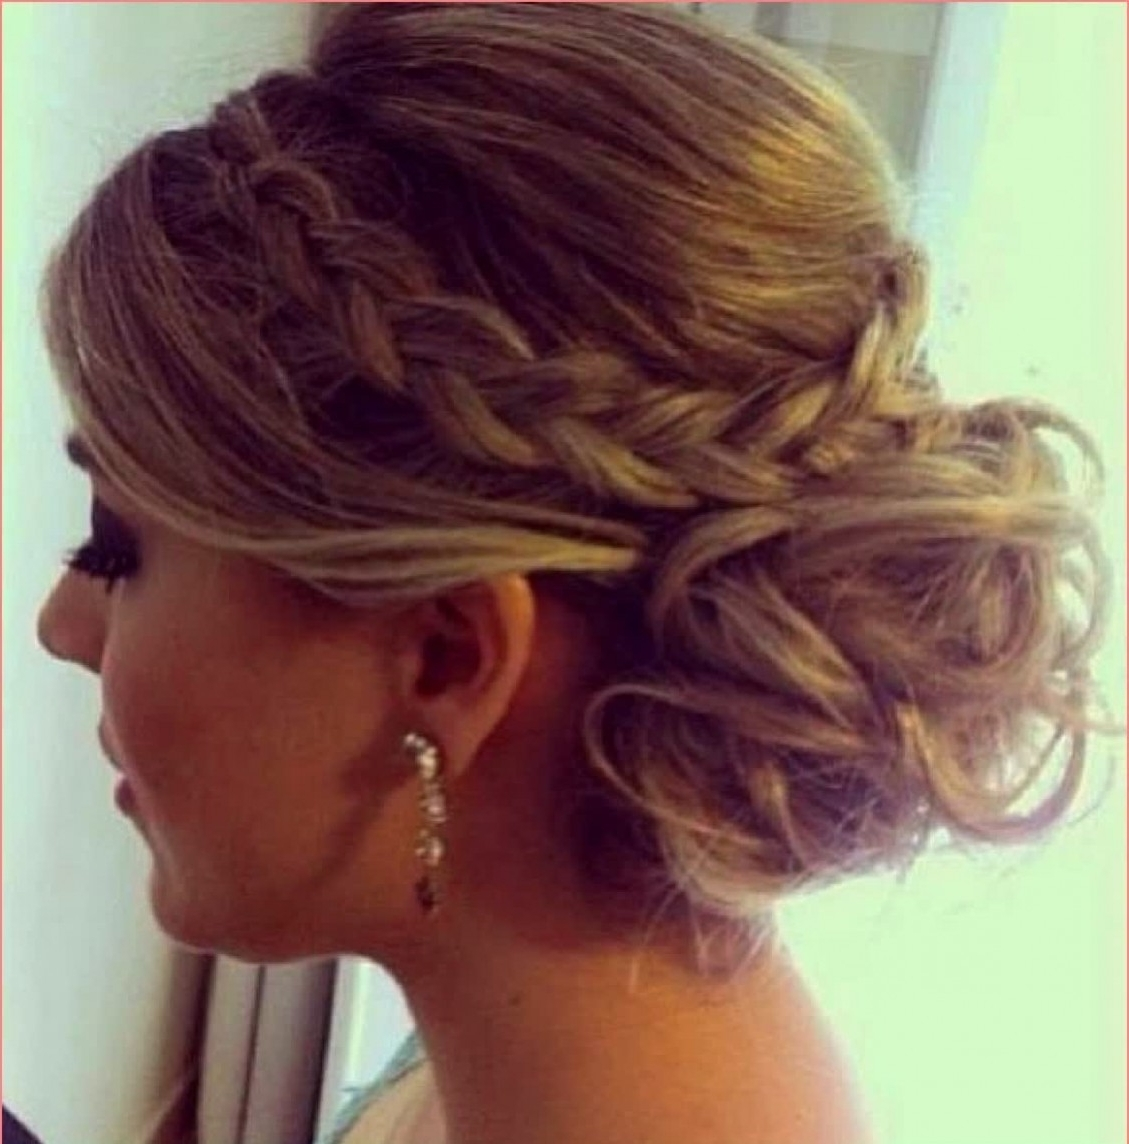 Cute Hairstyles Cute Updo Hairstyles For Graduation – Best . (View 4 of 15)